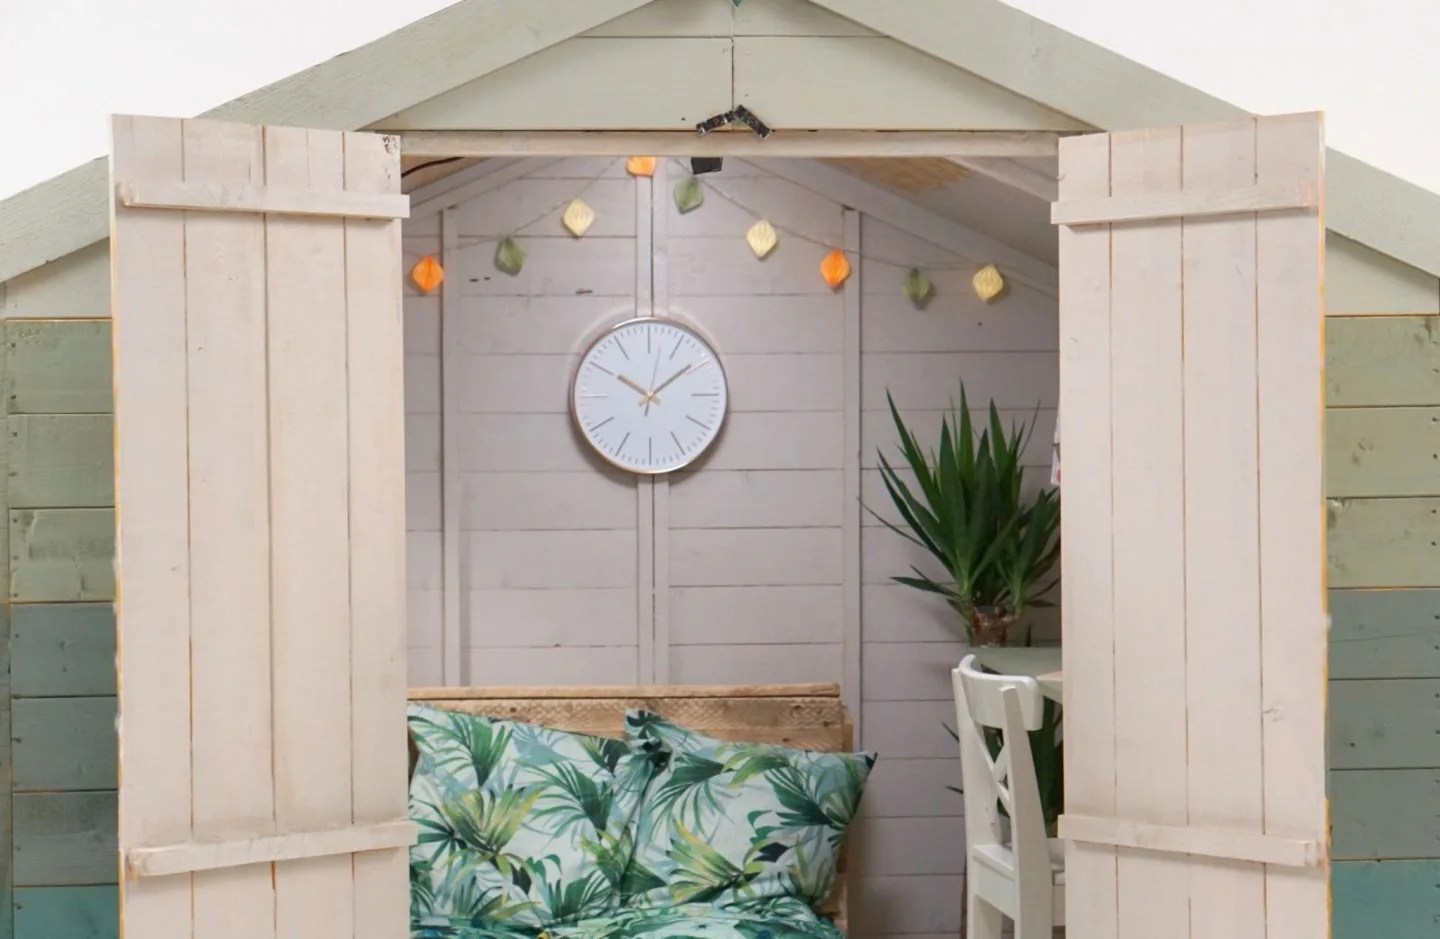 A finished Garden Office decorated with up-cycled furniture extraordinarychaos.com